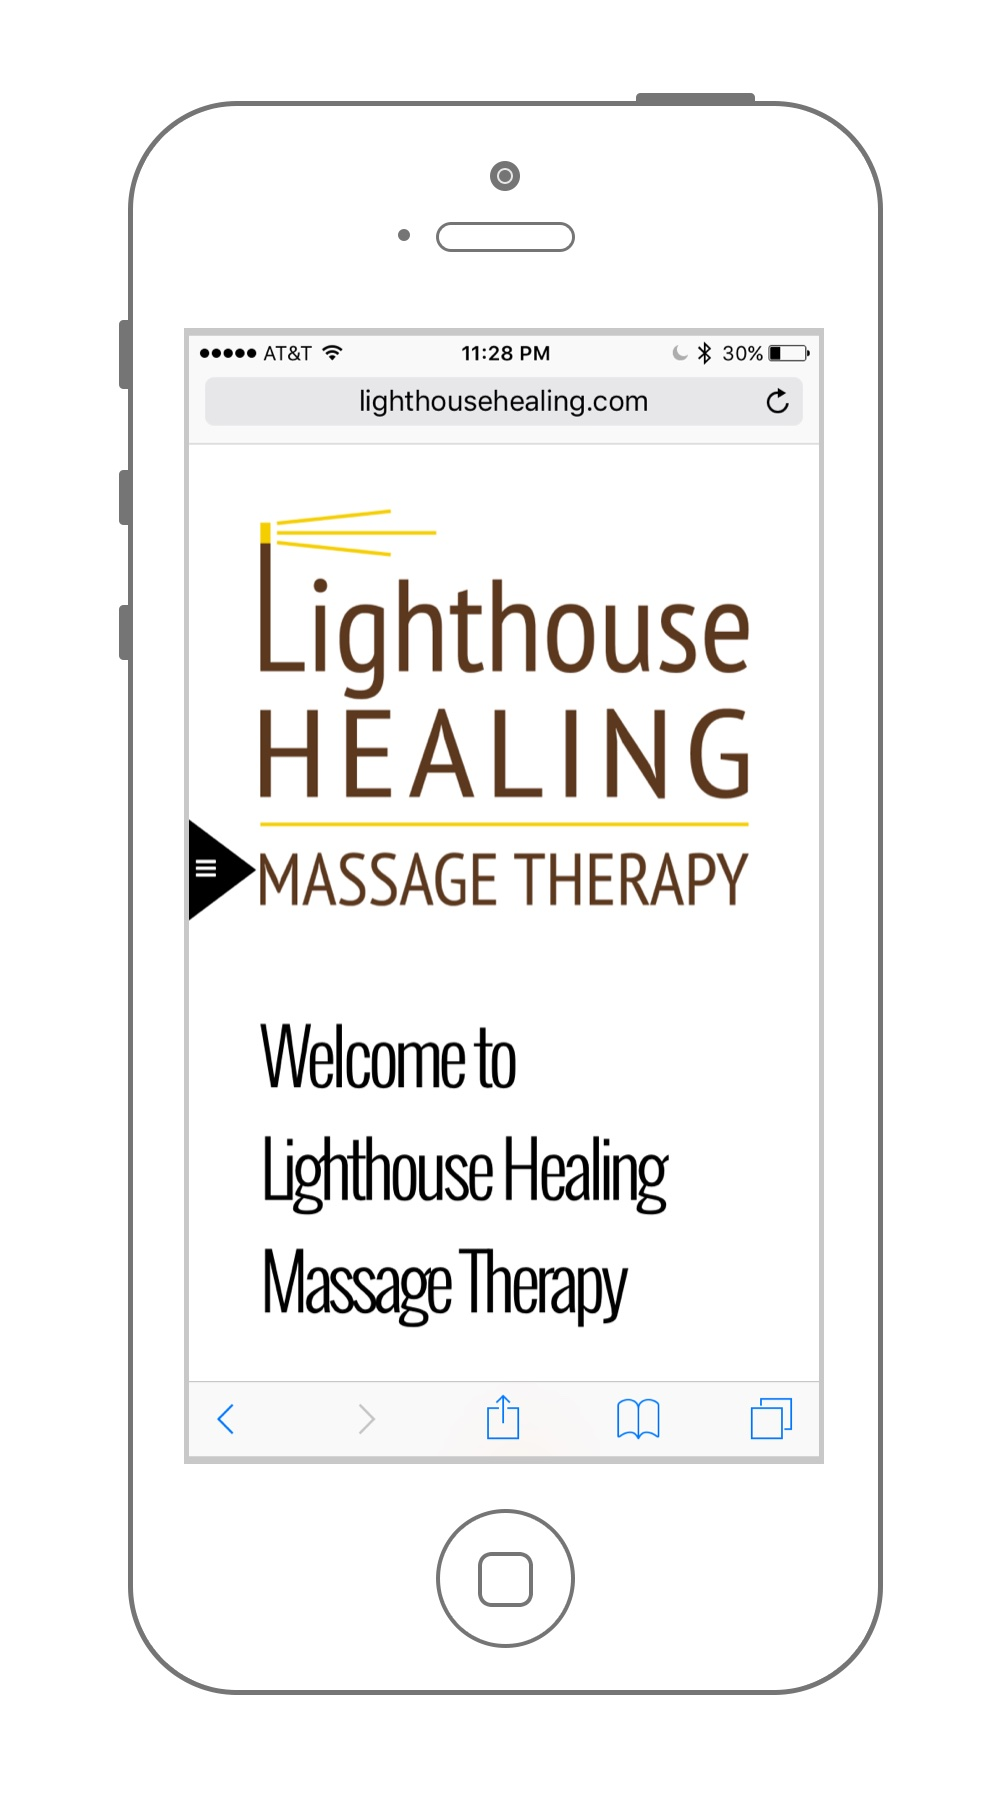 Website Design Lighthouse Healing Massage Therapy